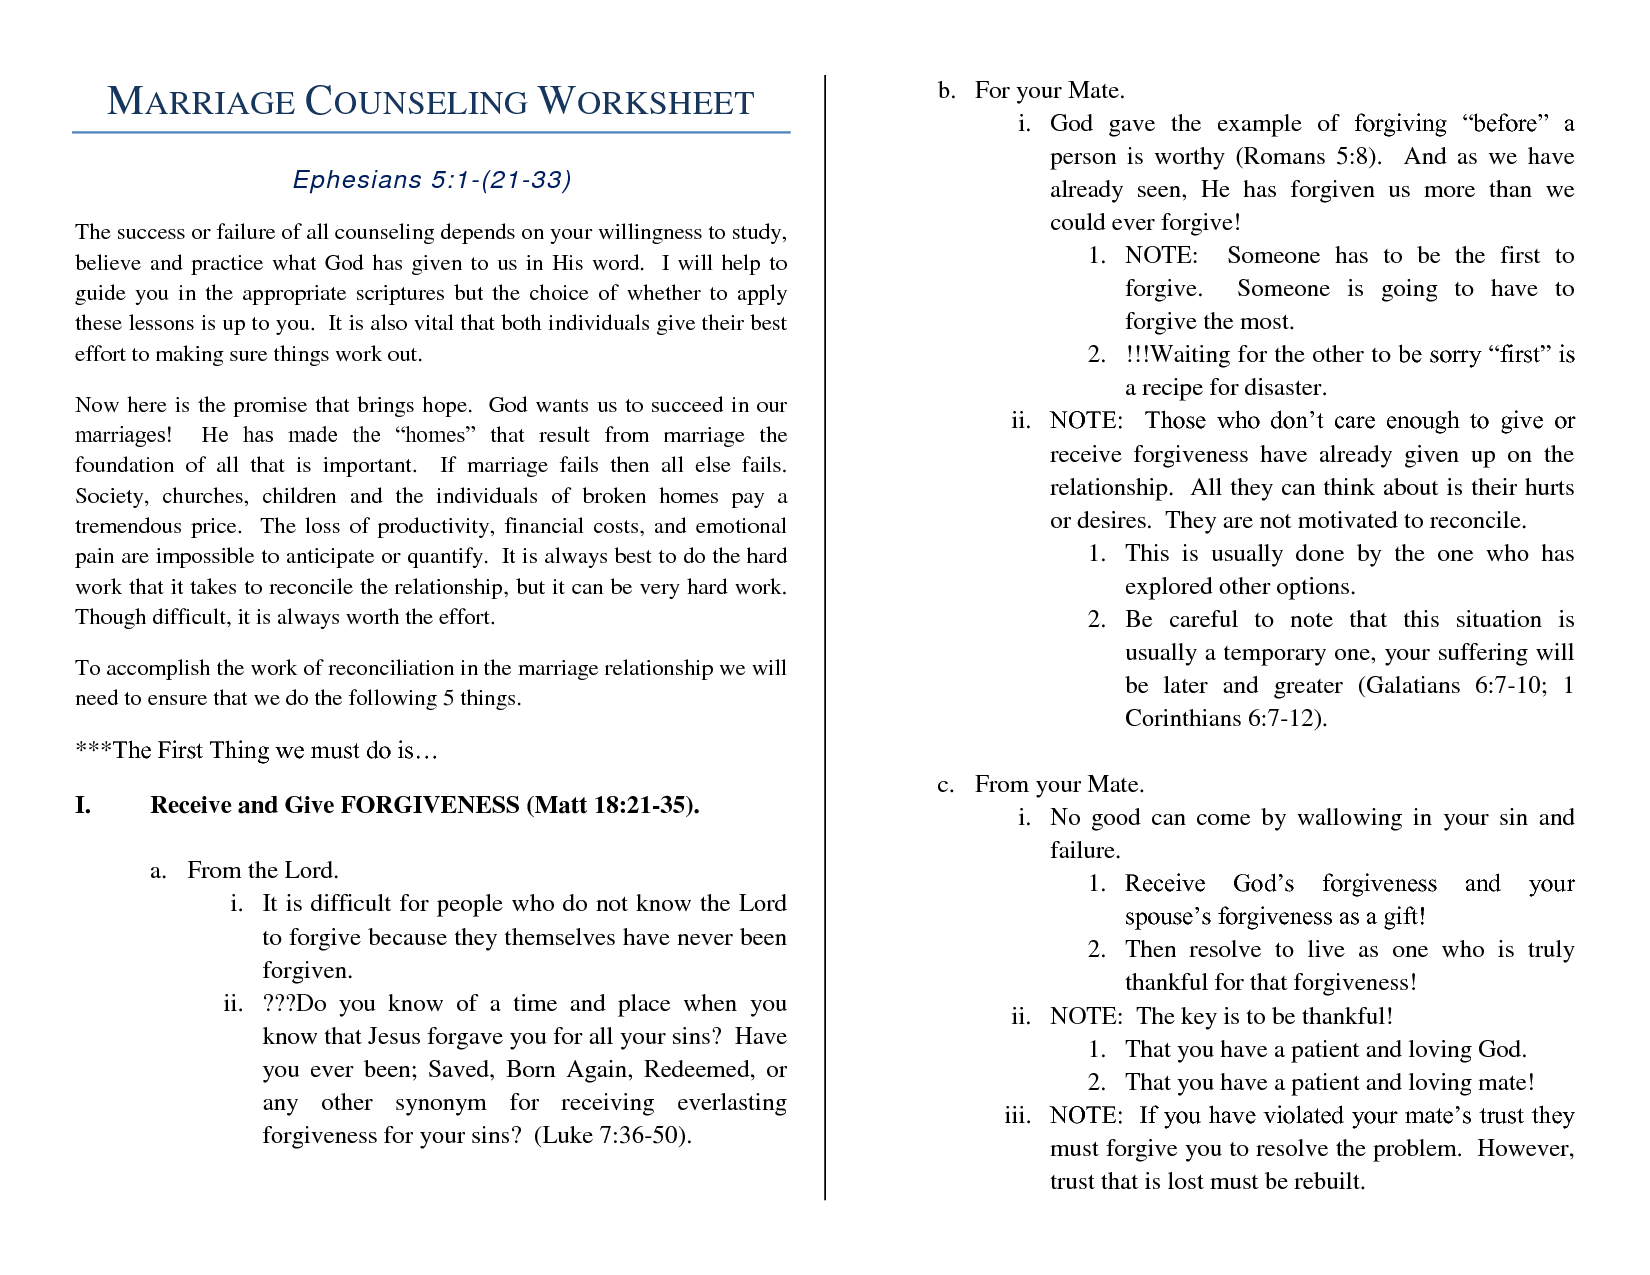 Worksheets Marriage Help Worksheets marriagehelpworksheet marriage counseling worksheet worksheet